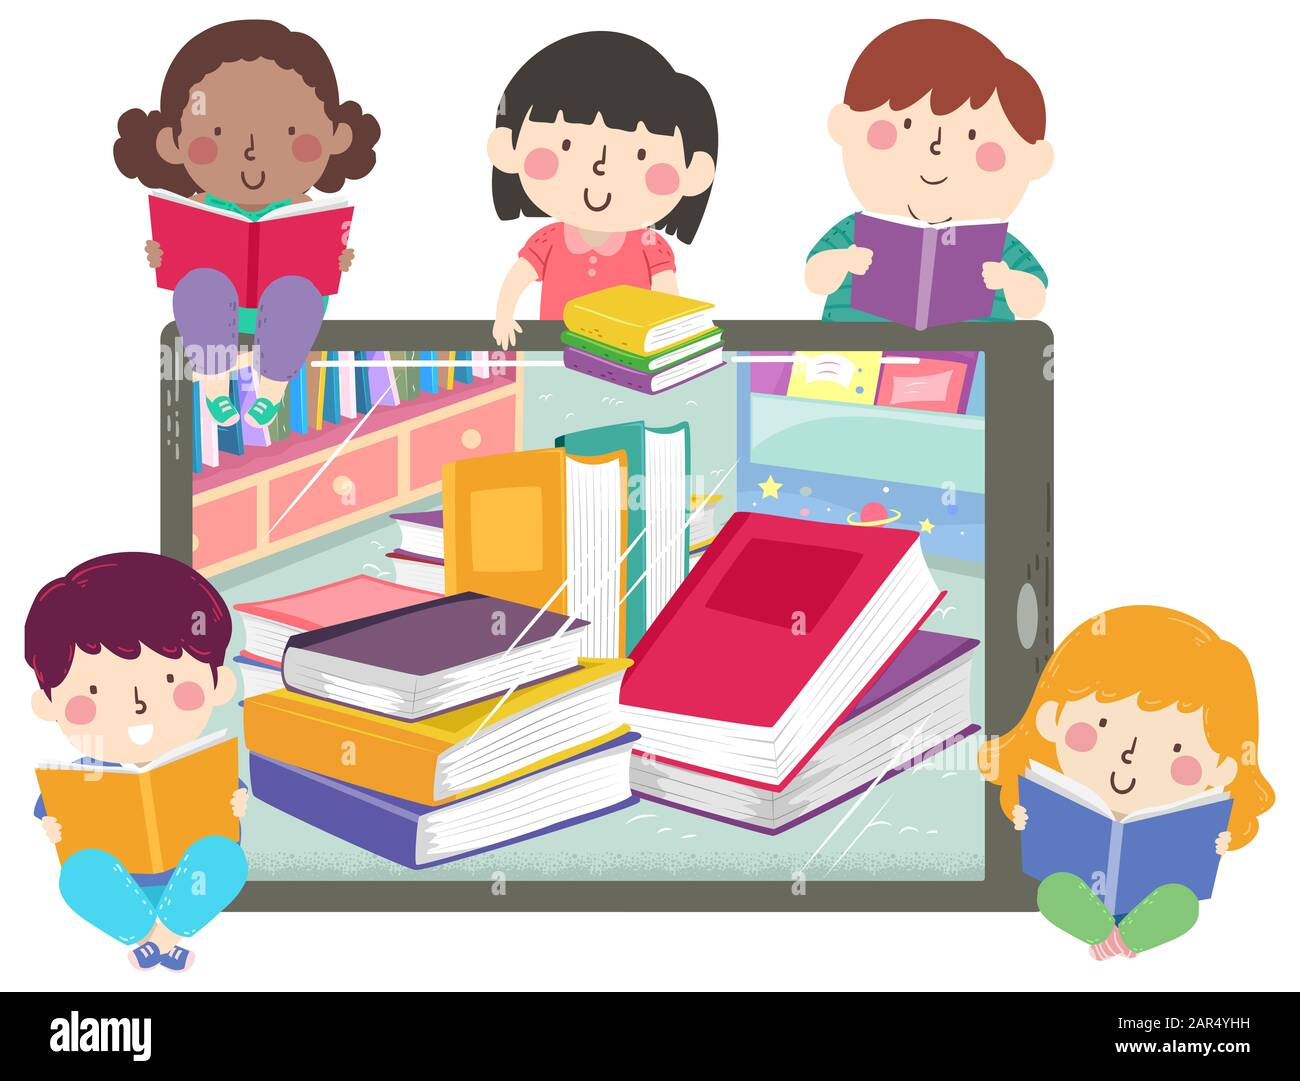 Image result for computer and kids with books cartoon